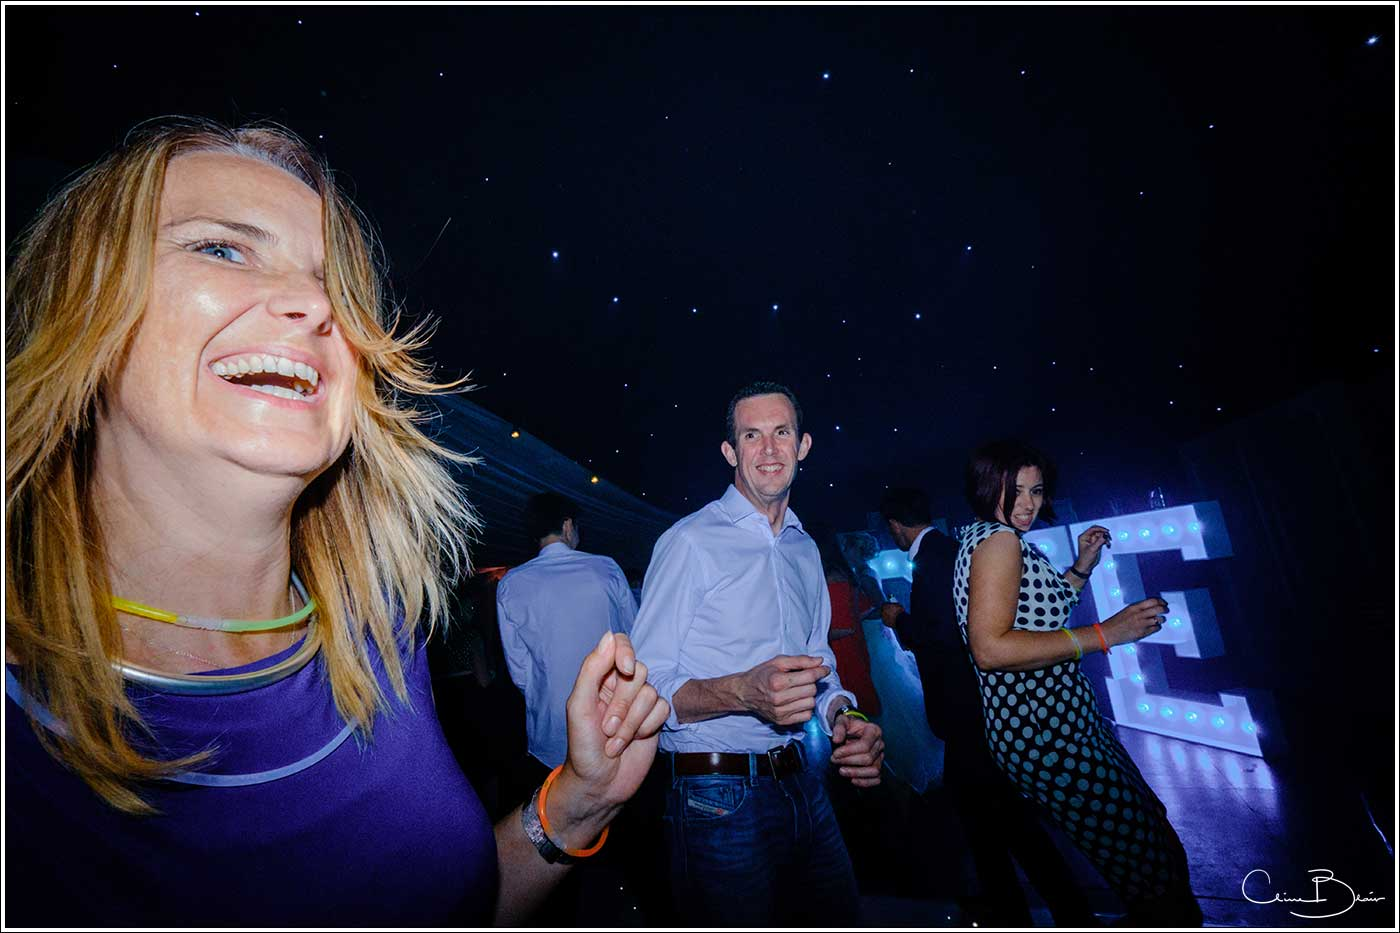 Coombe Abbey wedding photography showing happy man and woman on the dance floor